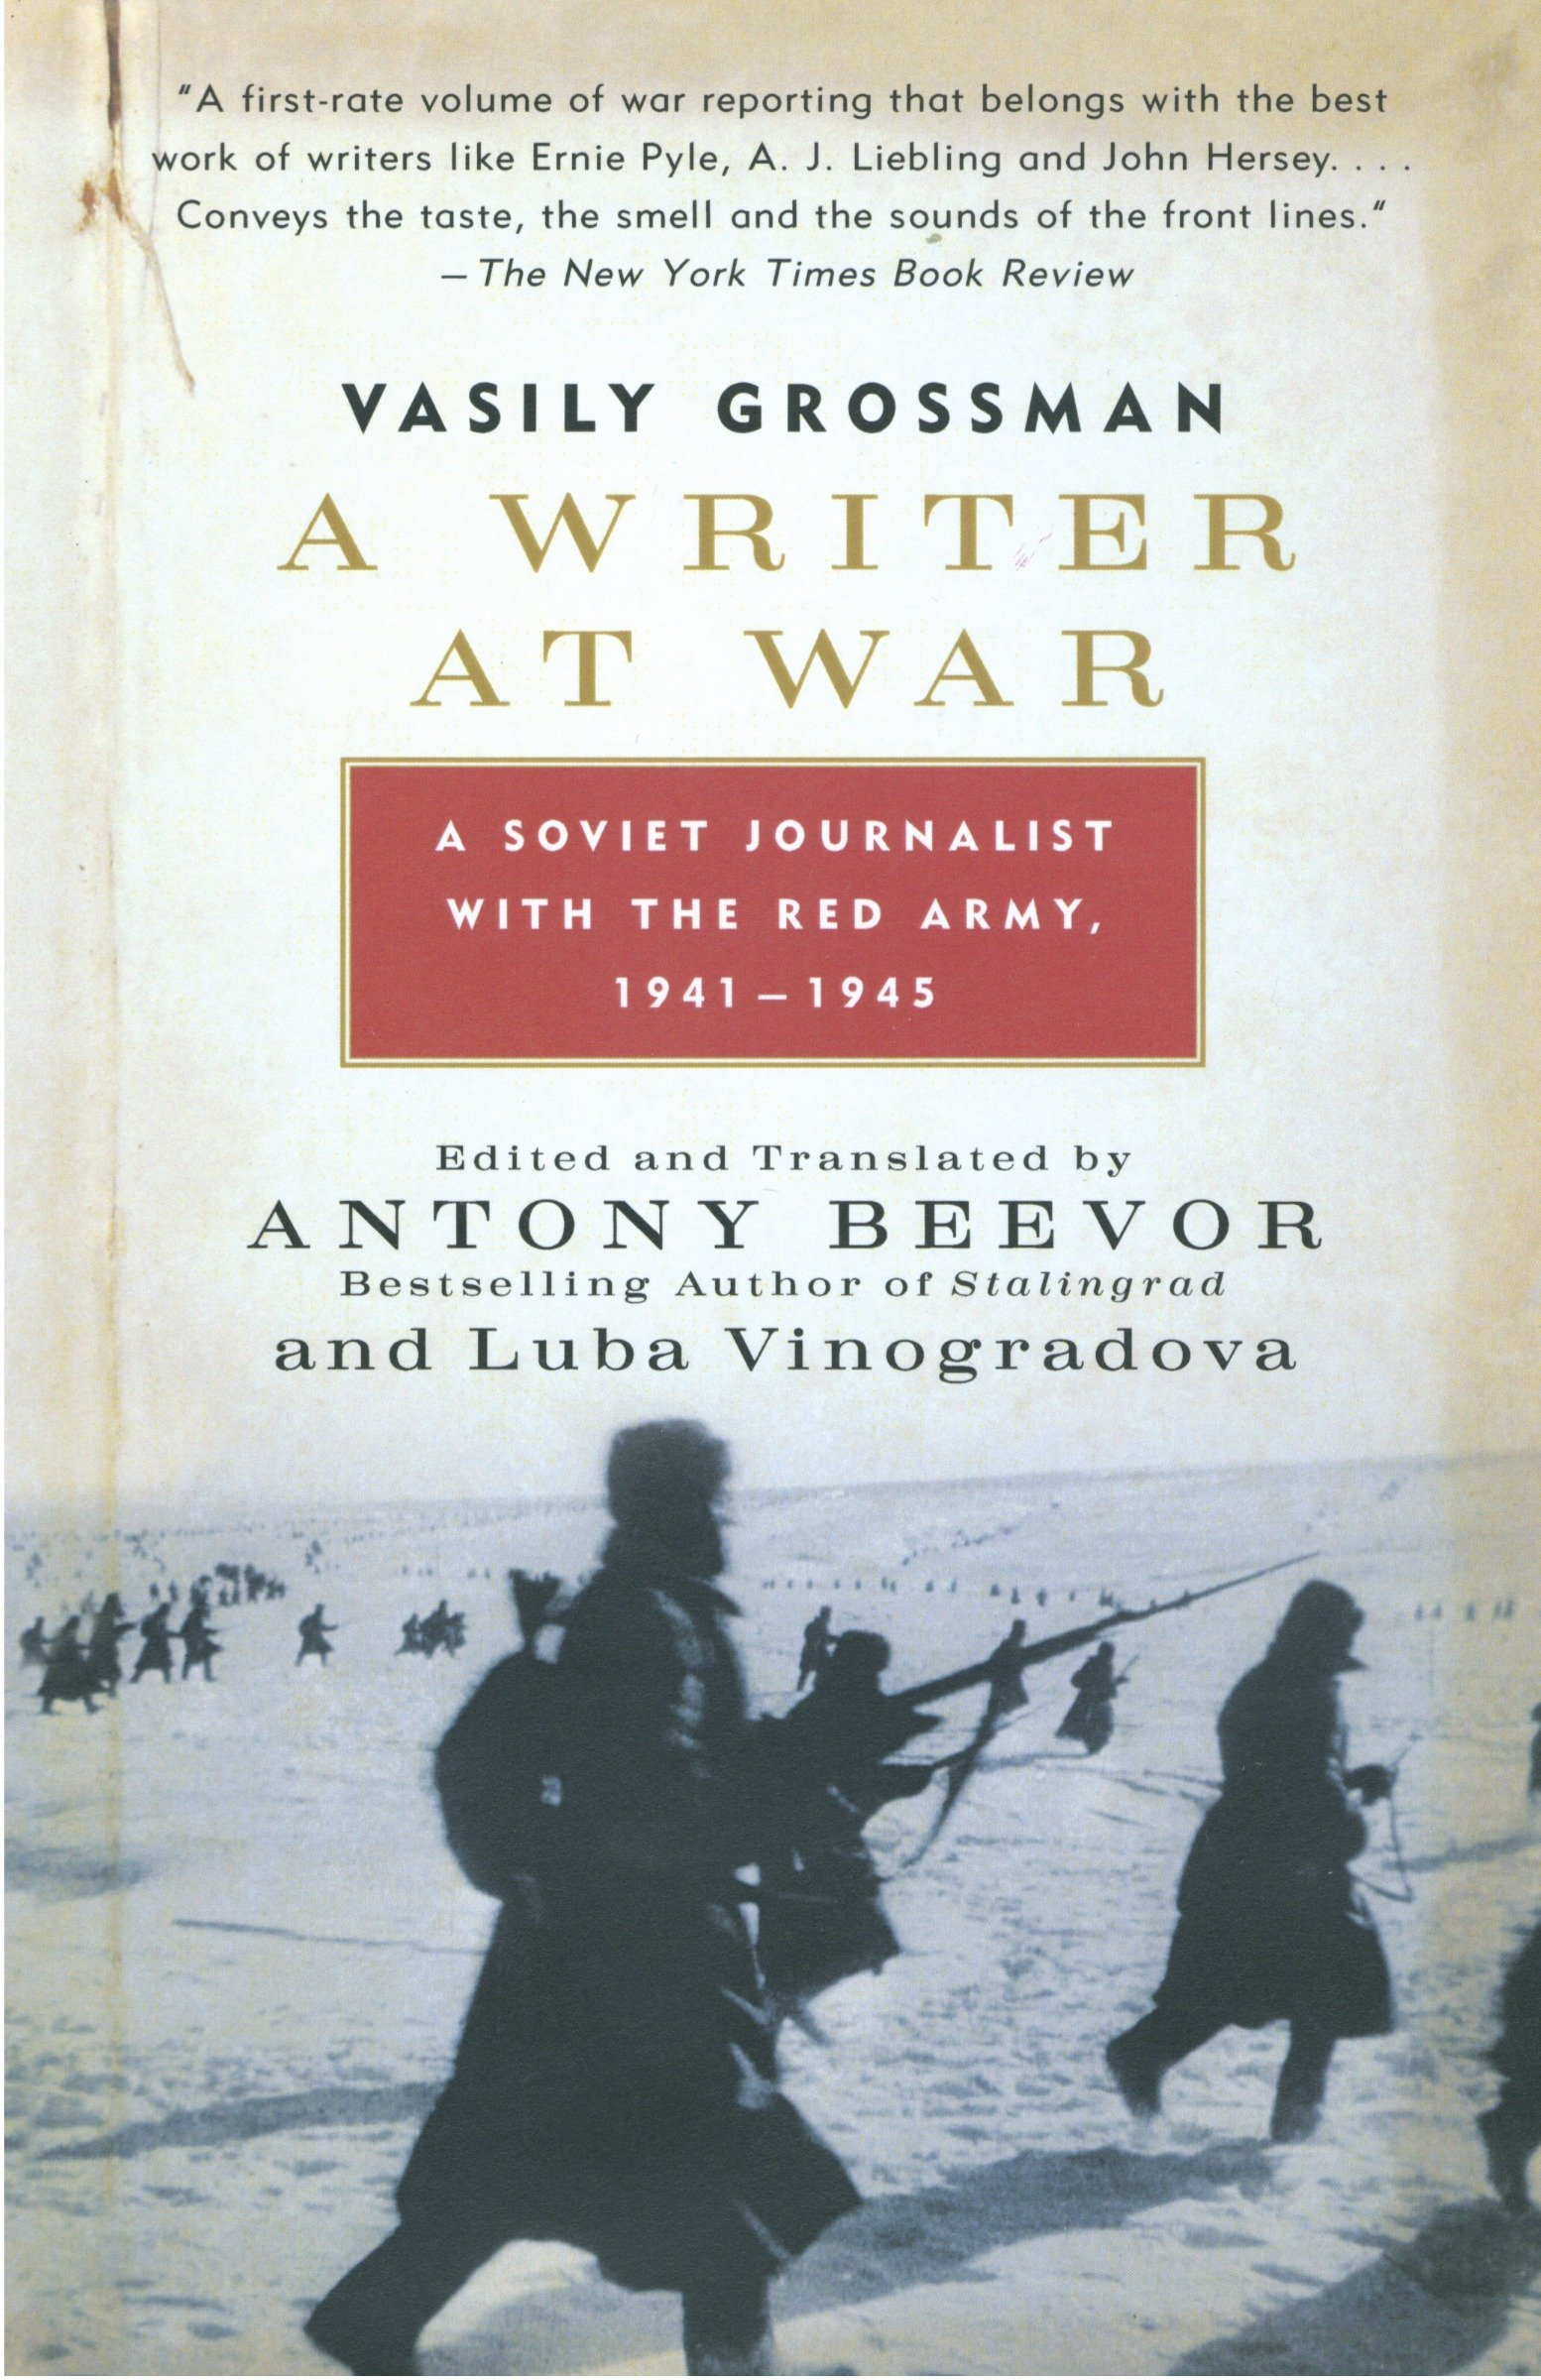 A Writer at War: A Soviet Journalist with the Red Army, 1941-1945 pdf